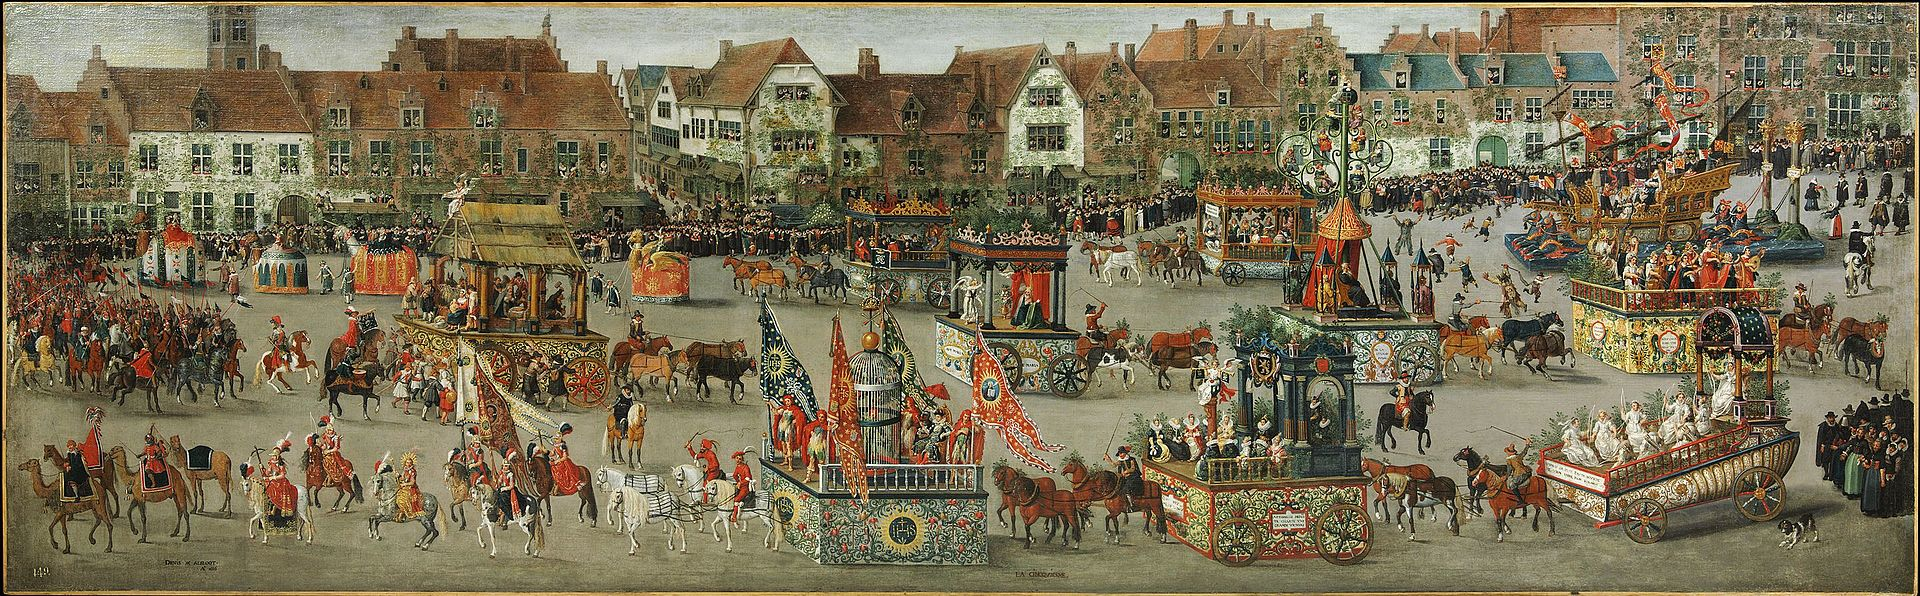 https://upload.wikimedia.org/wikipedia/commons/thumb/4/4c/Denis_van_Alsloot_-_The_Ommeganck_in_Brussels_on_31_May_1615._The_Triumph_of_Archduchess_Isabella.jpg/1920px-Denis_van_Alsloot_-_The_Ommeganck_in_Brussels_on_31_May_1615._The_Triumph_of_Archduchess_Isabella.jpg